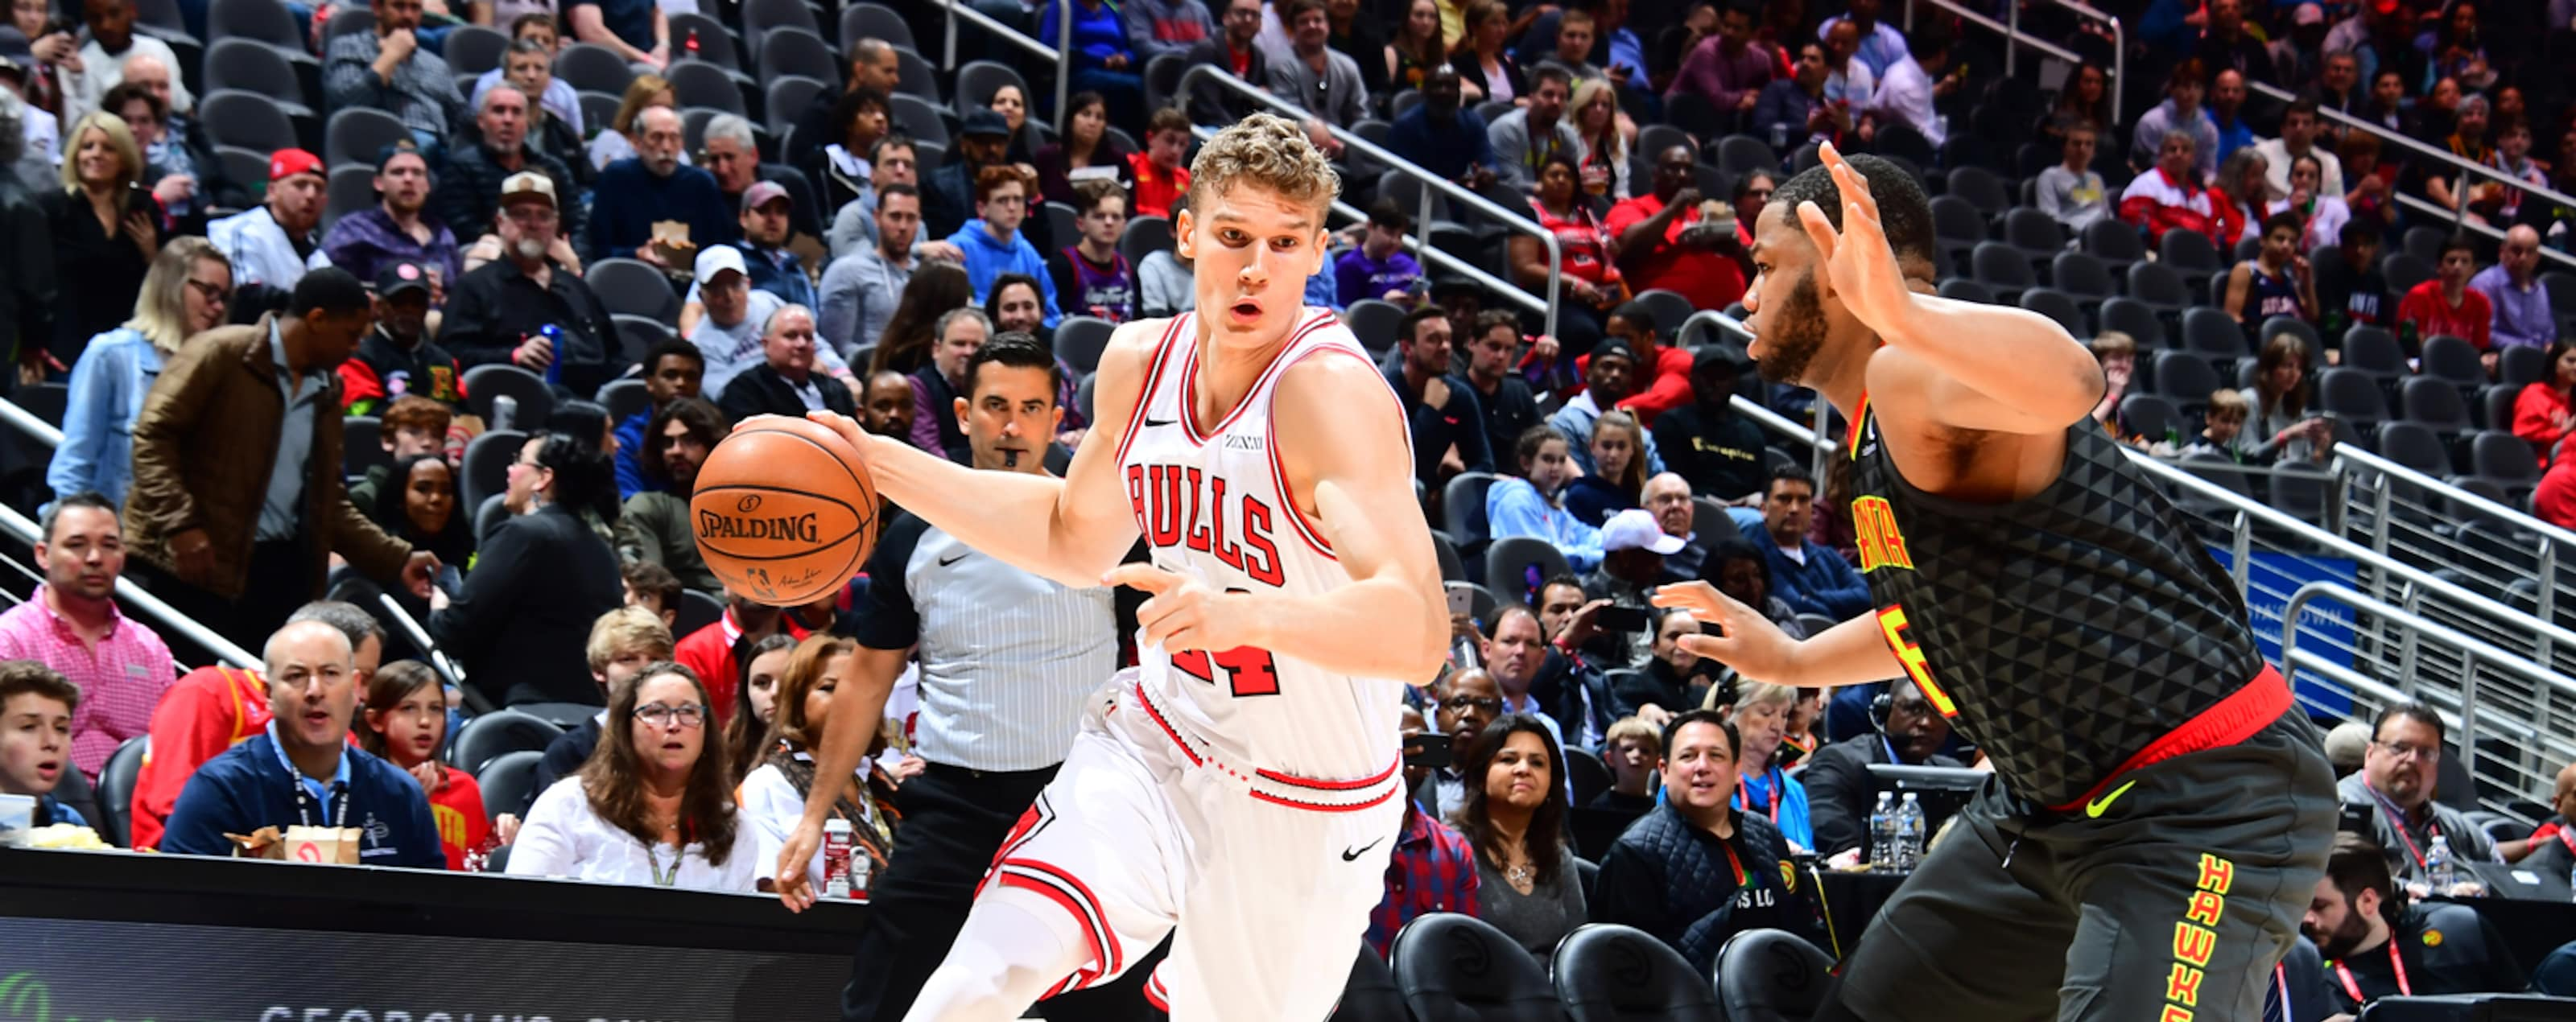 Lauri Markkanen #24 of the Chicago Bulls drives to the basket against the Atlanta Hawks on March 1, 2019 at State Farm Arena in Atlanta, Georgia